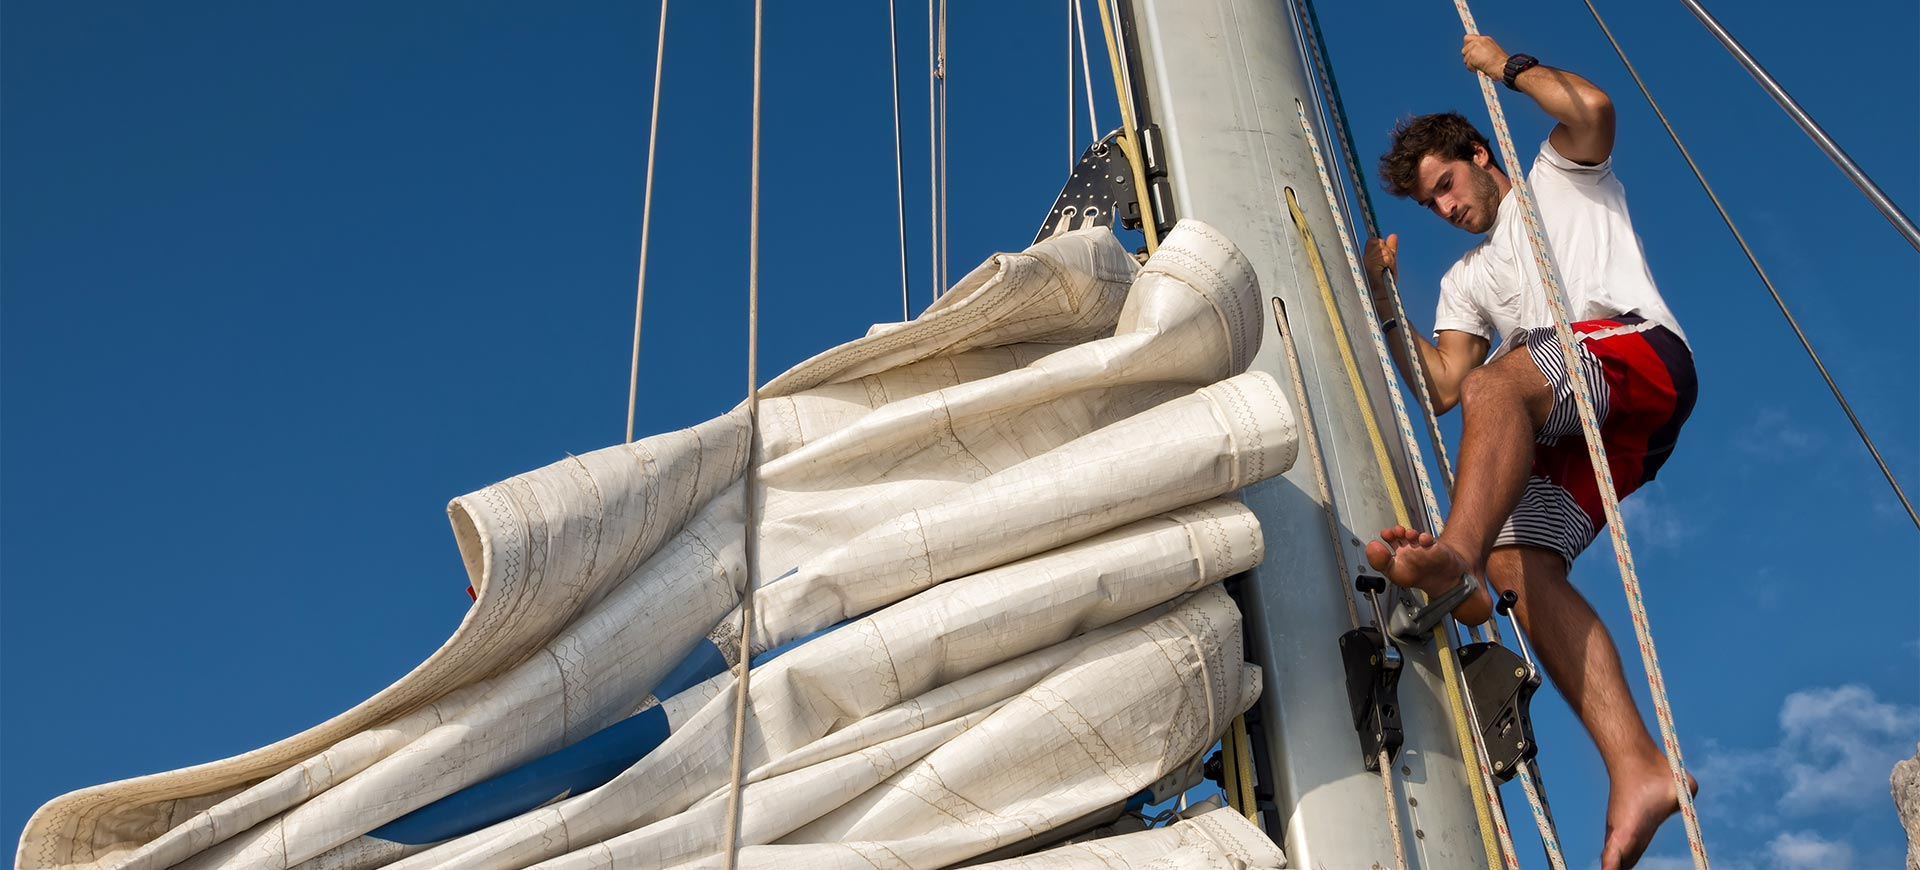 Yacht maintenance & service for charter boats